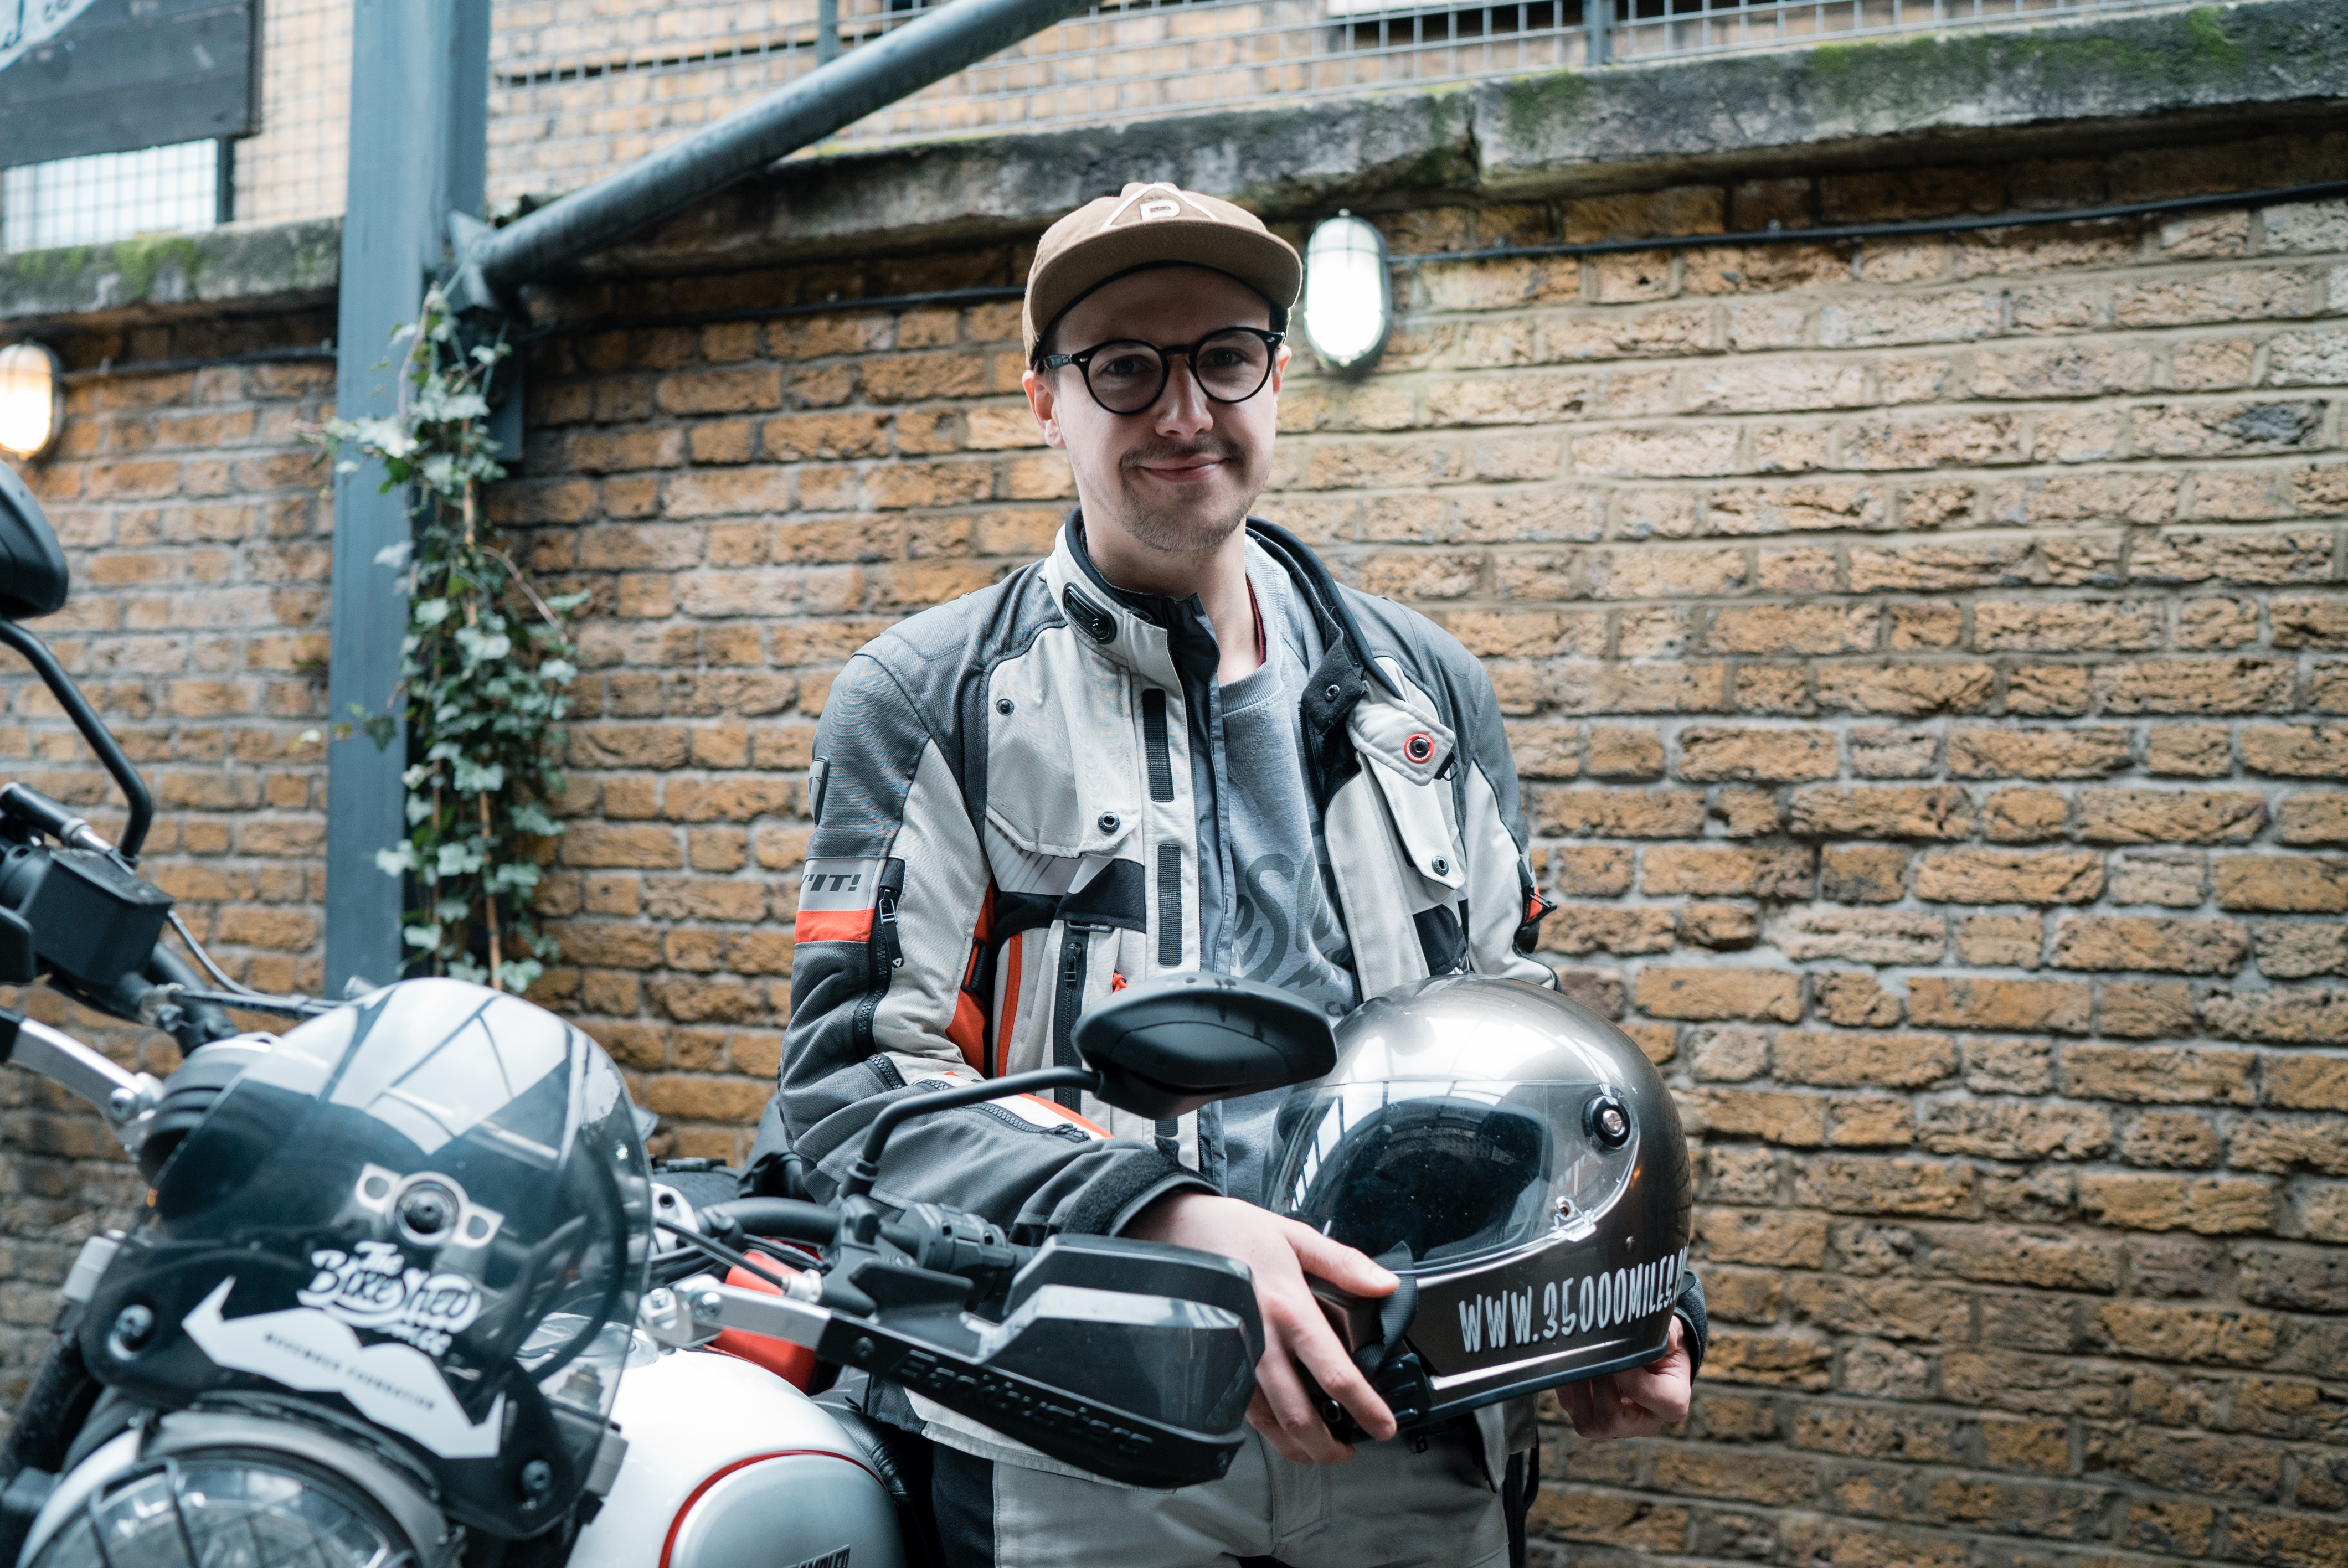 22-year-old's solo motorcycle trip around the world